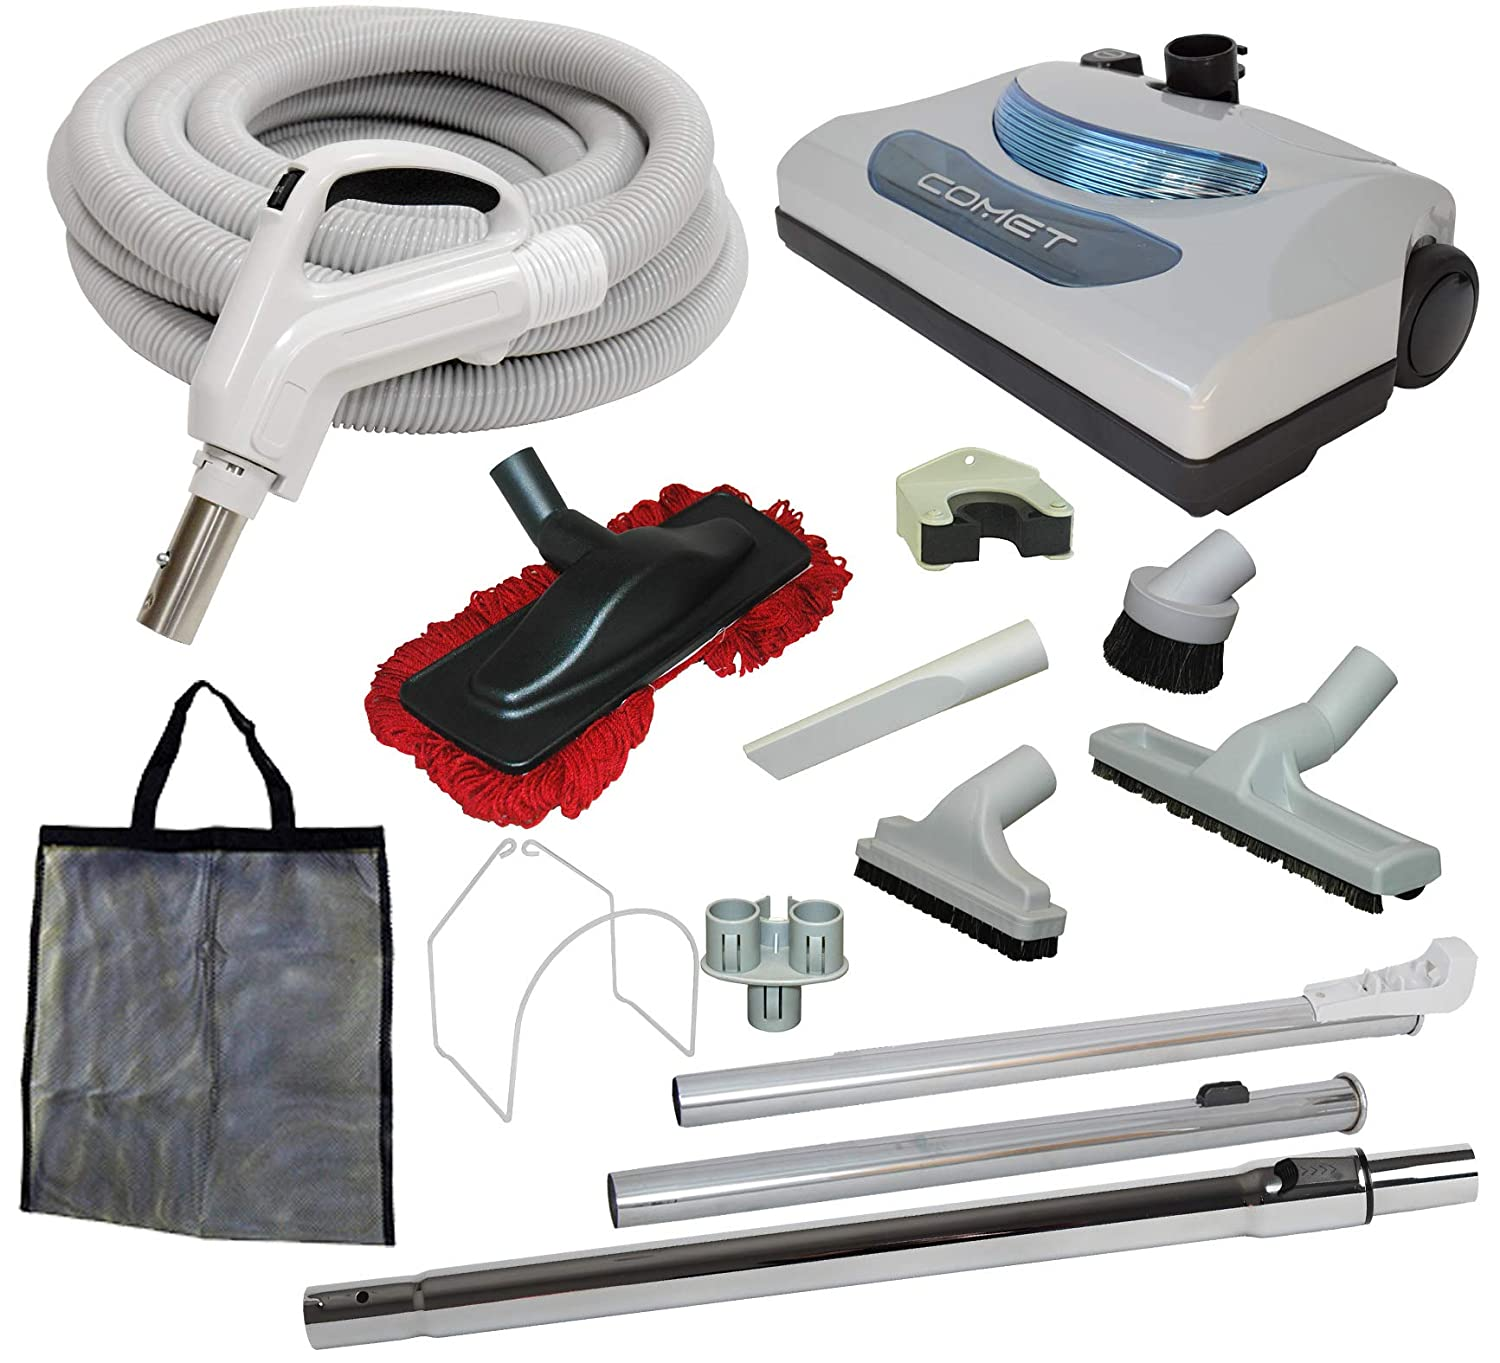 "35' ""Comet"" Central Vacuum Kit with Hose, Power Head & Tools - Works with All Brands of Central Vacuum Units"